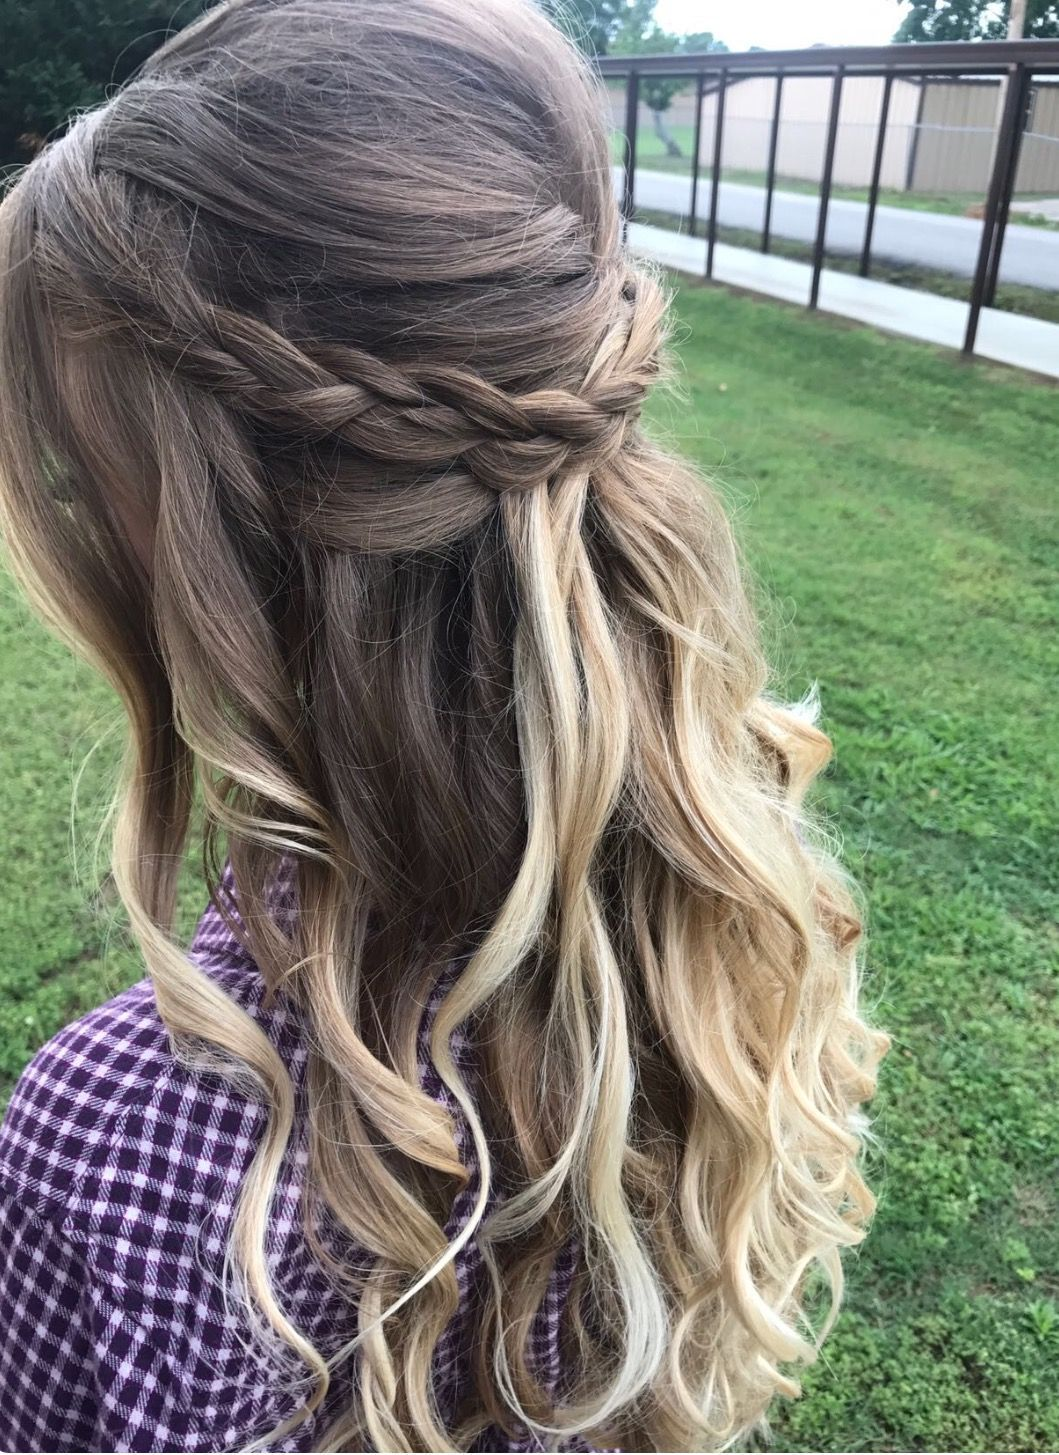 half up/half down hair with messy braid and loose curls